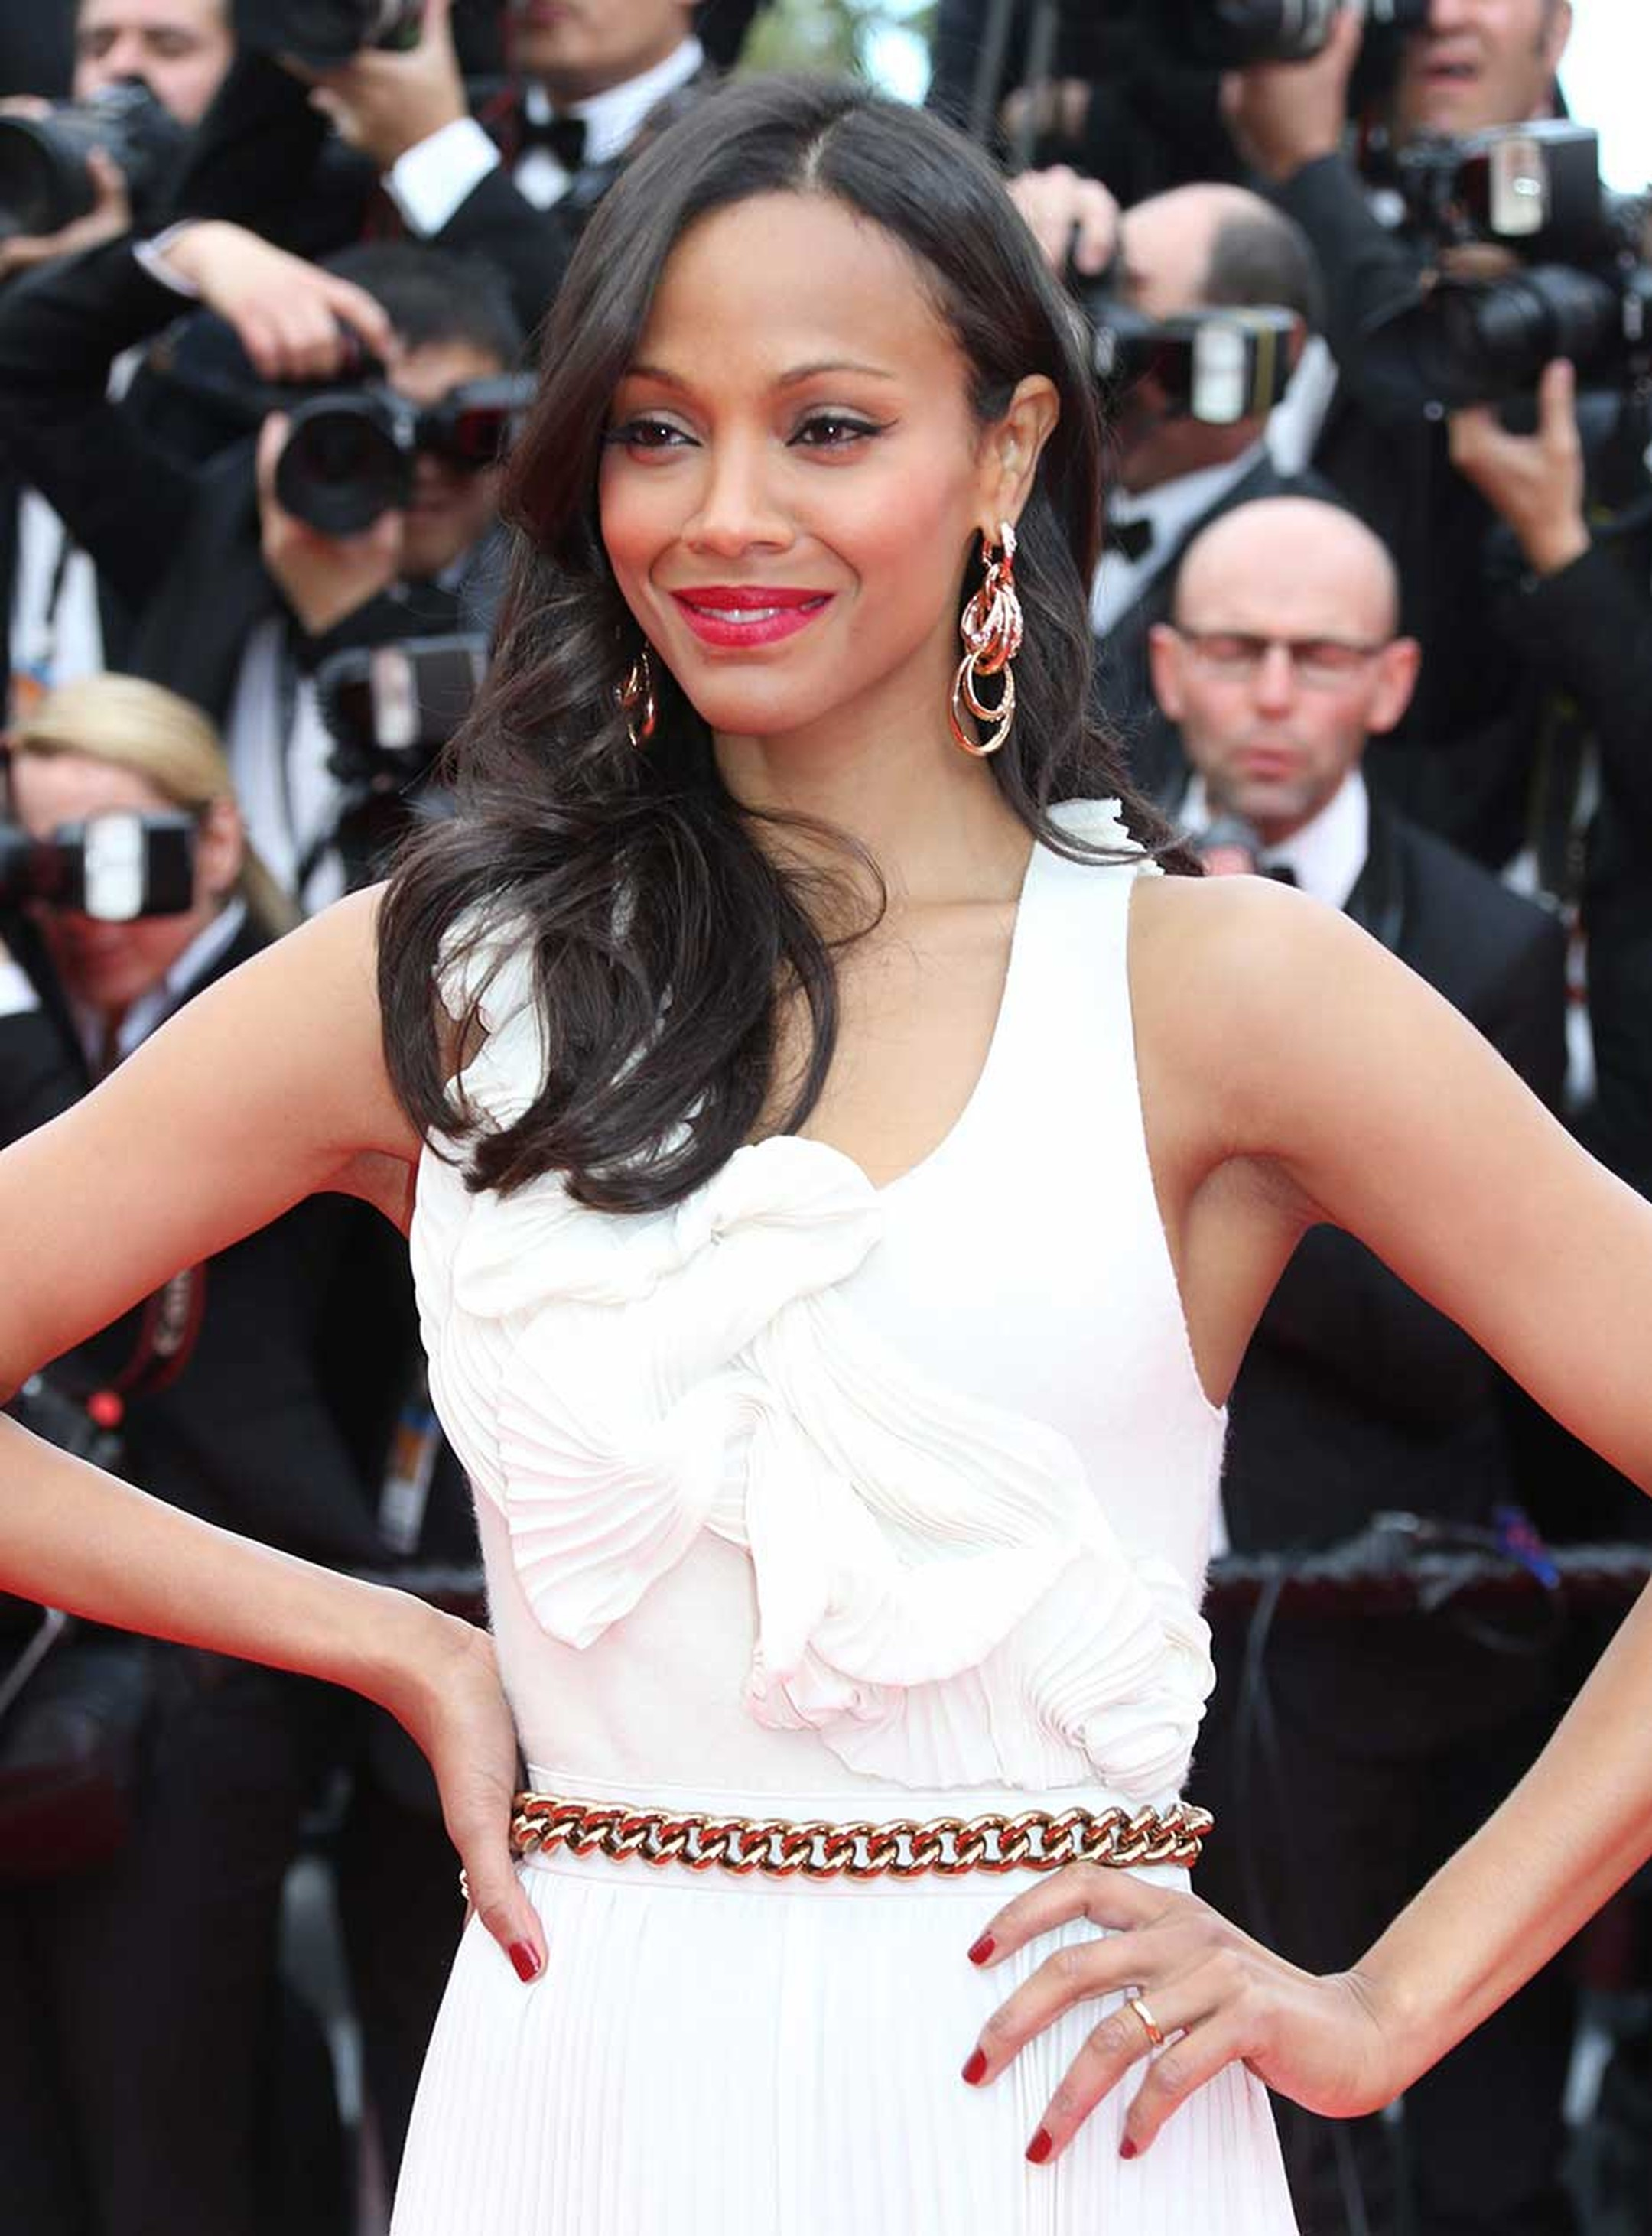 Zoe Saldana paired her pretty Victoria Beckham dress with Catene earrings and an Onde ring, both in rose gold and diamonds, by De GRISOGONO